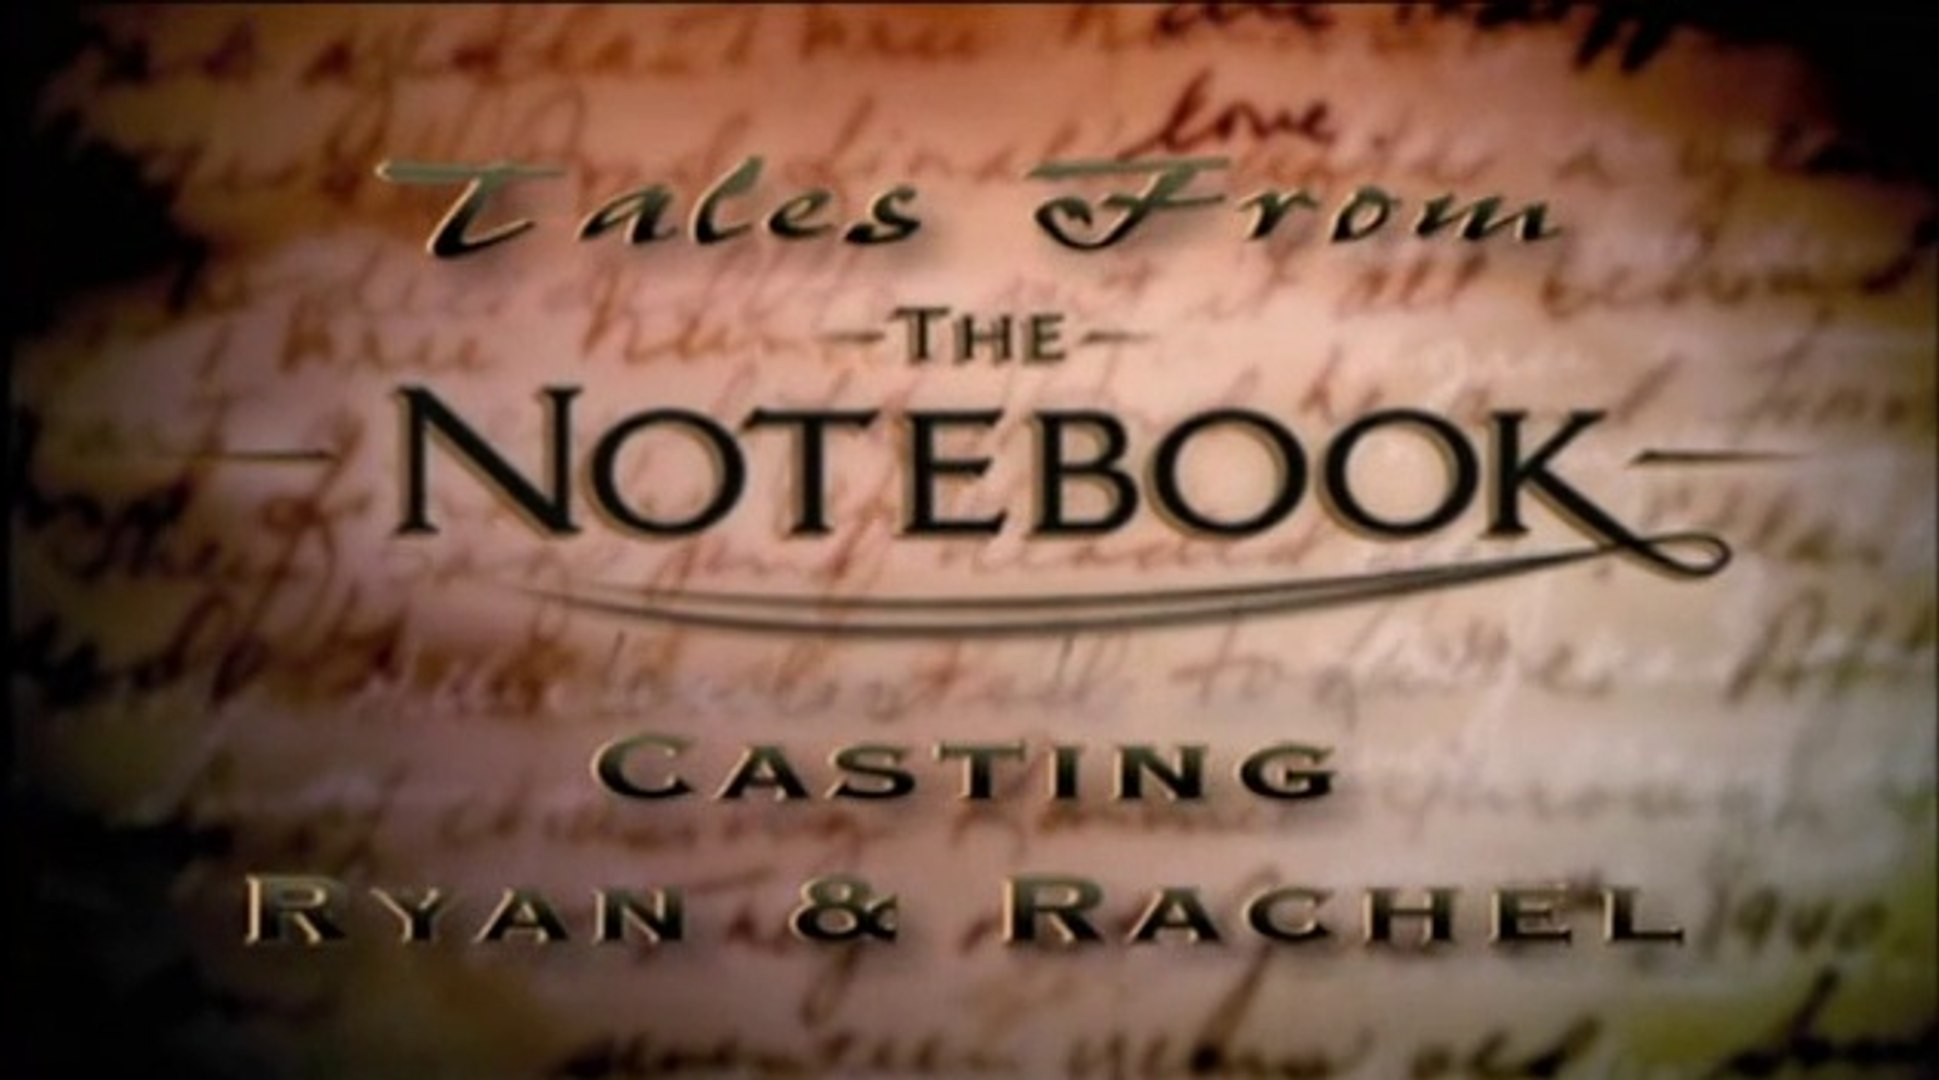 The Notebook - Special Features